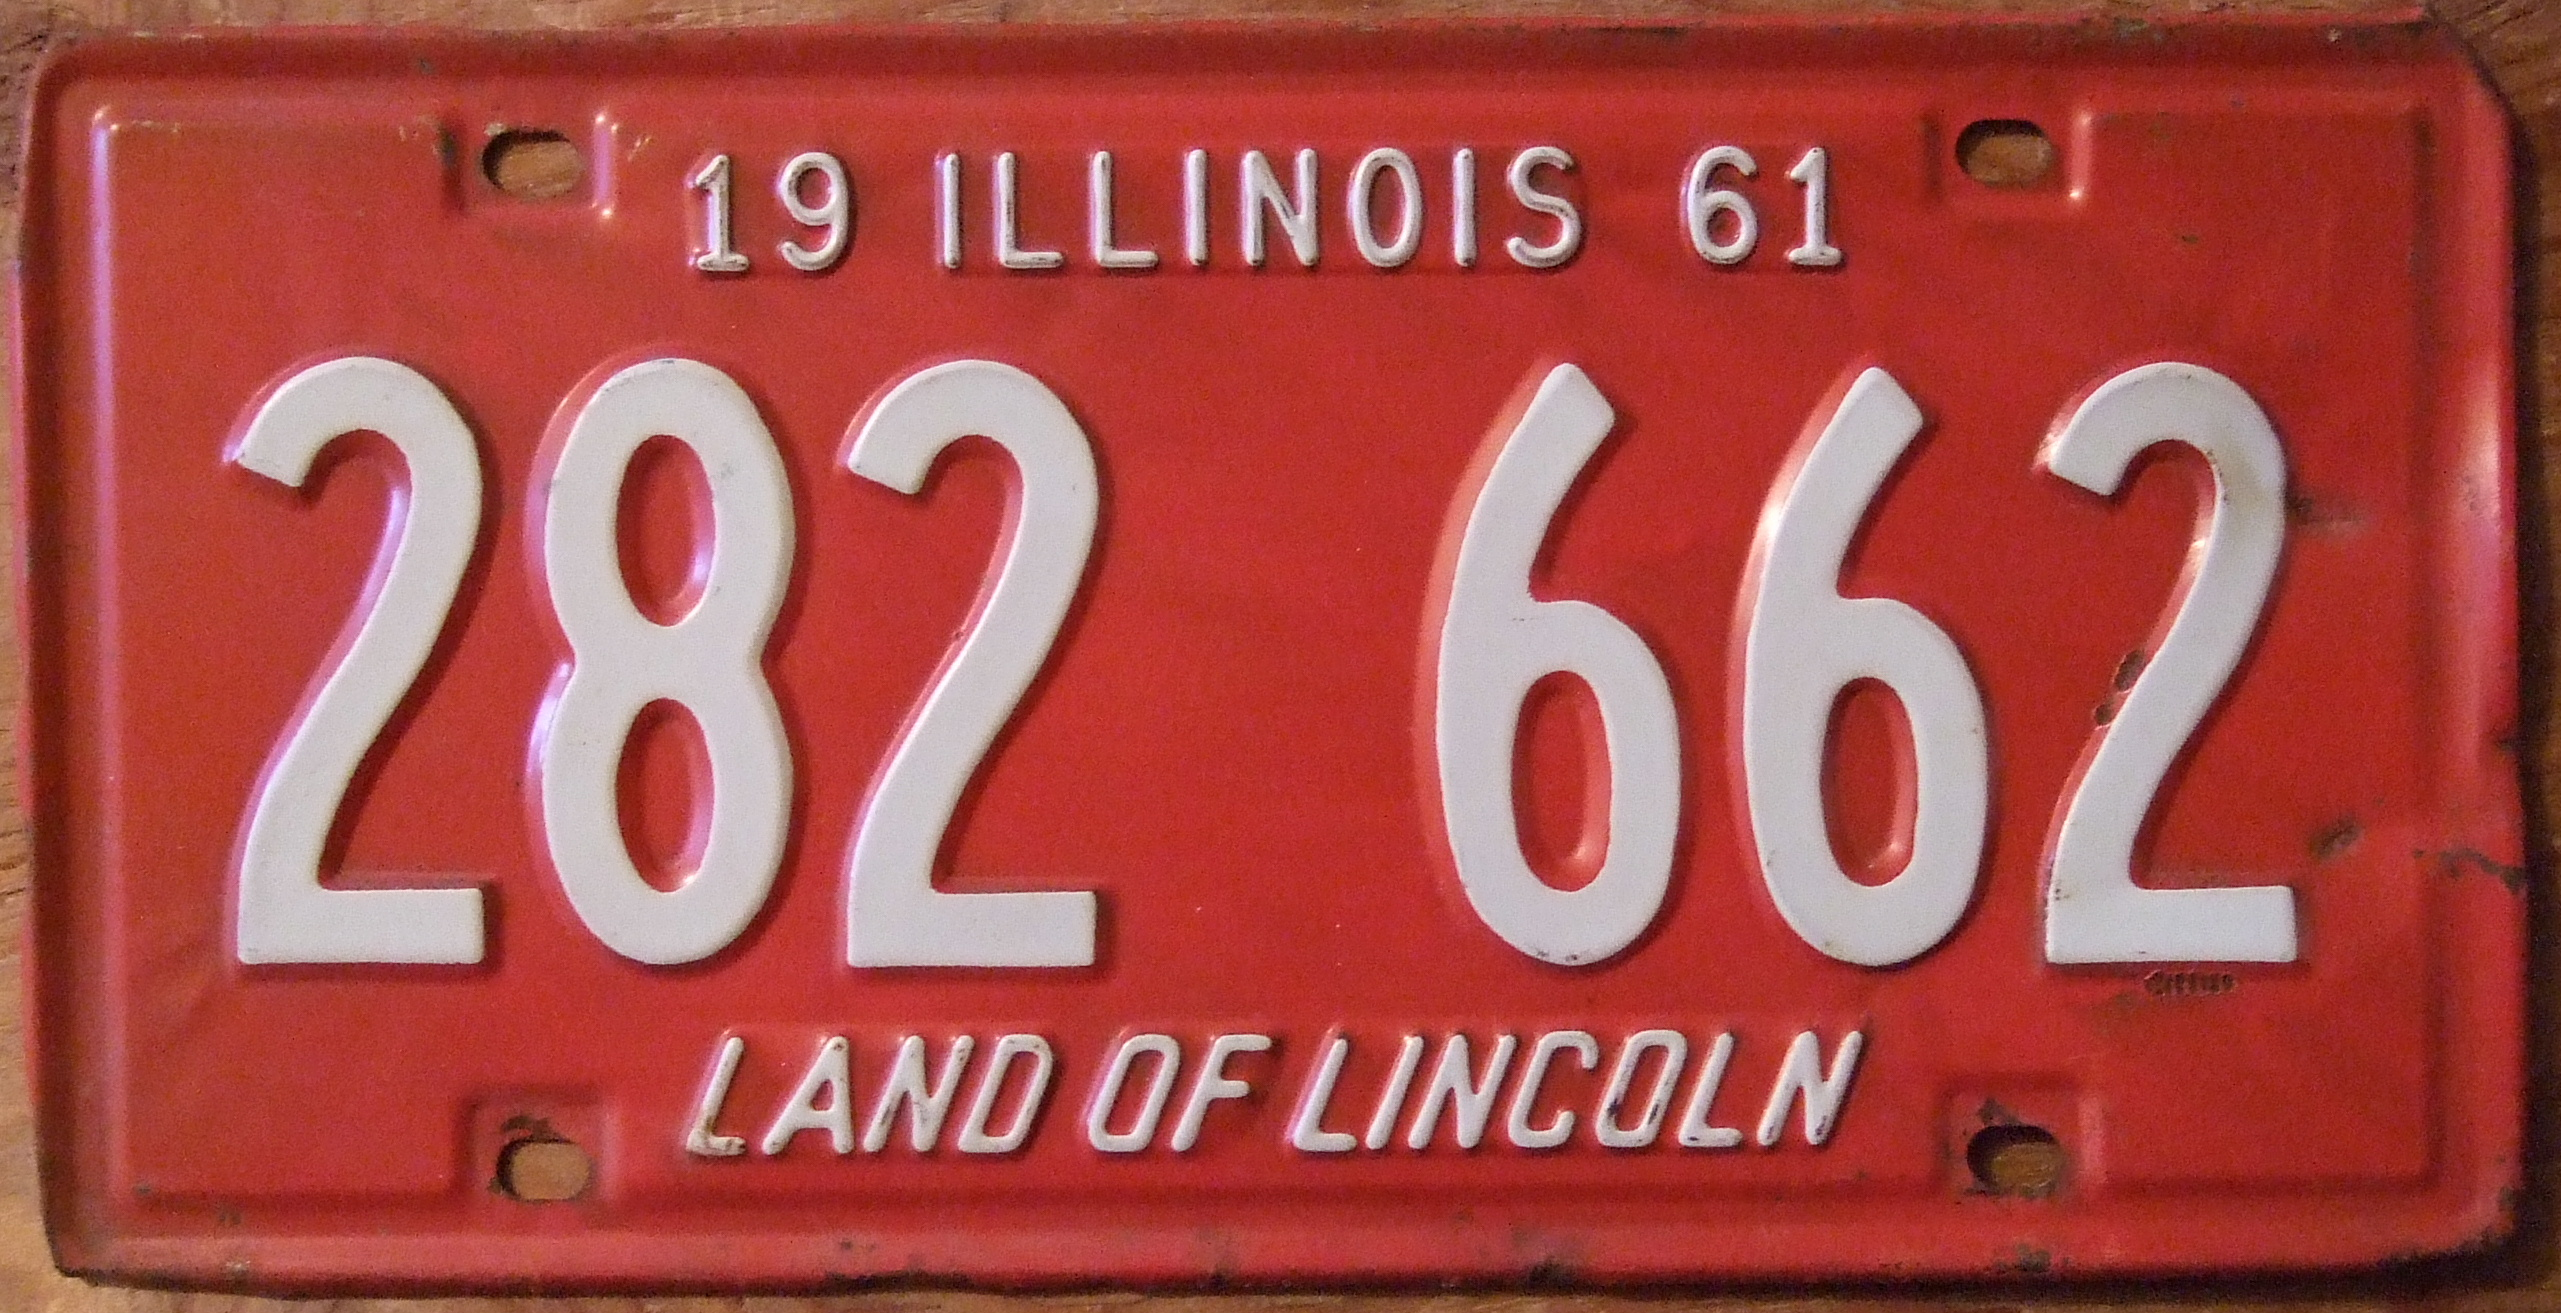 FileILLINOIS 1961 LICENSE PLATE 282-662 - Flickr - woody1778a.jpg  sc 1 st  Wikimedia Commons & File:ILLINOIS 1961 LICENSE PLATE 282-662 - Flickr - woody1778a.jpg ...